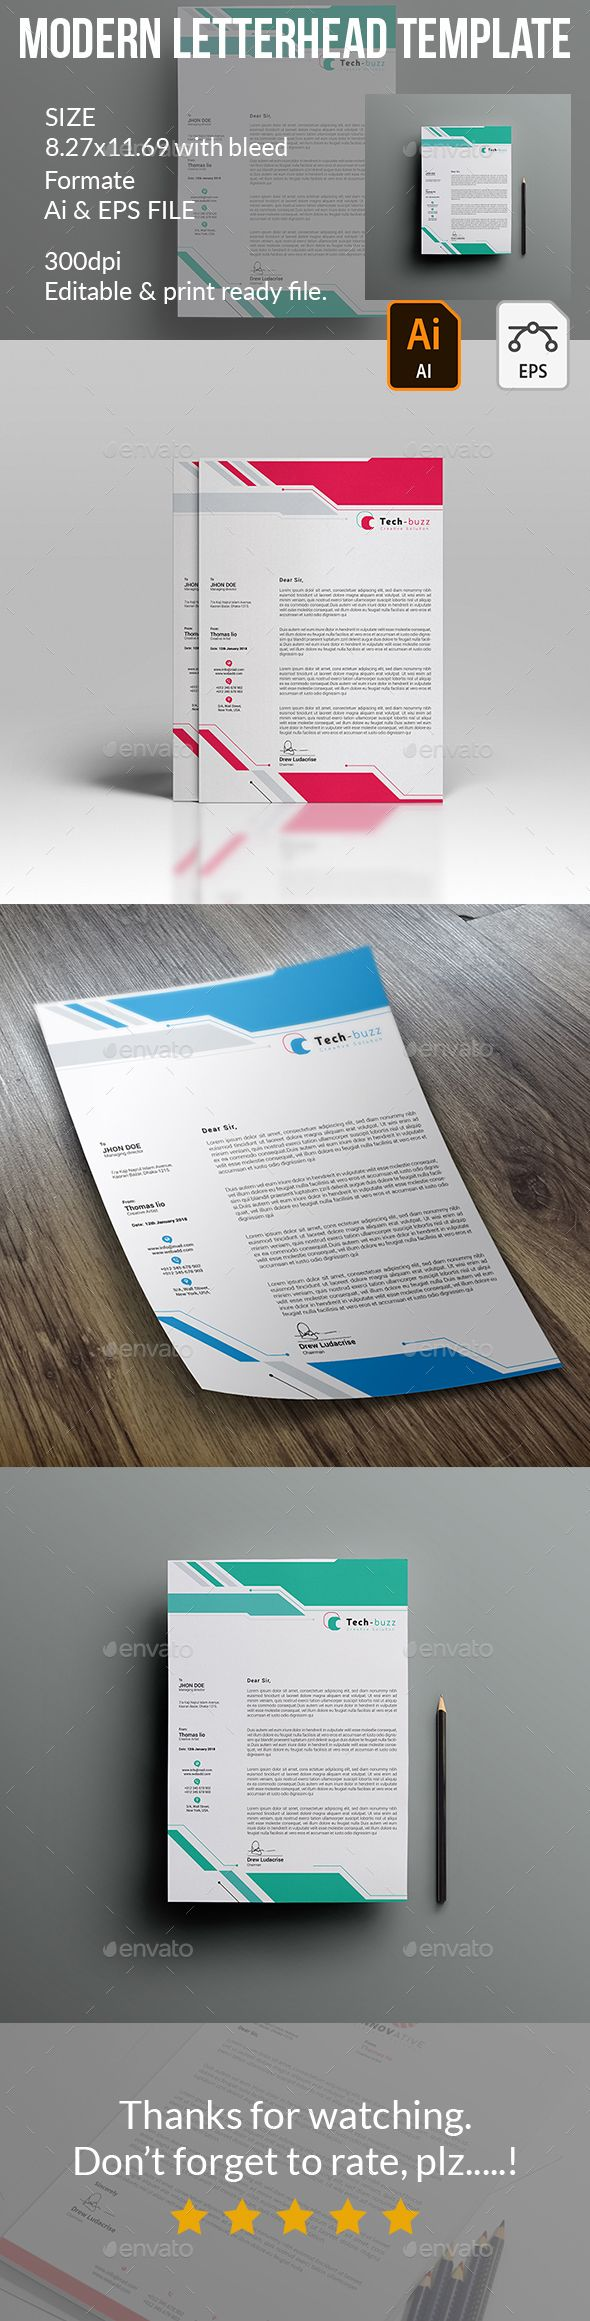 Letterhead Proposals u0026 Invoices Stationery Letterhead